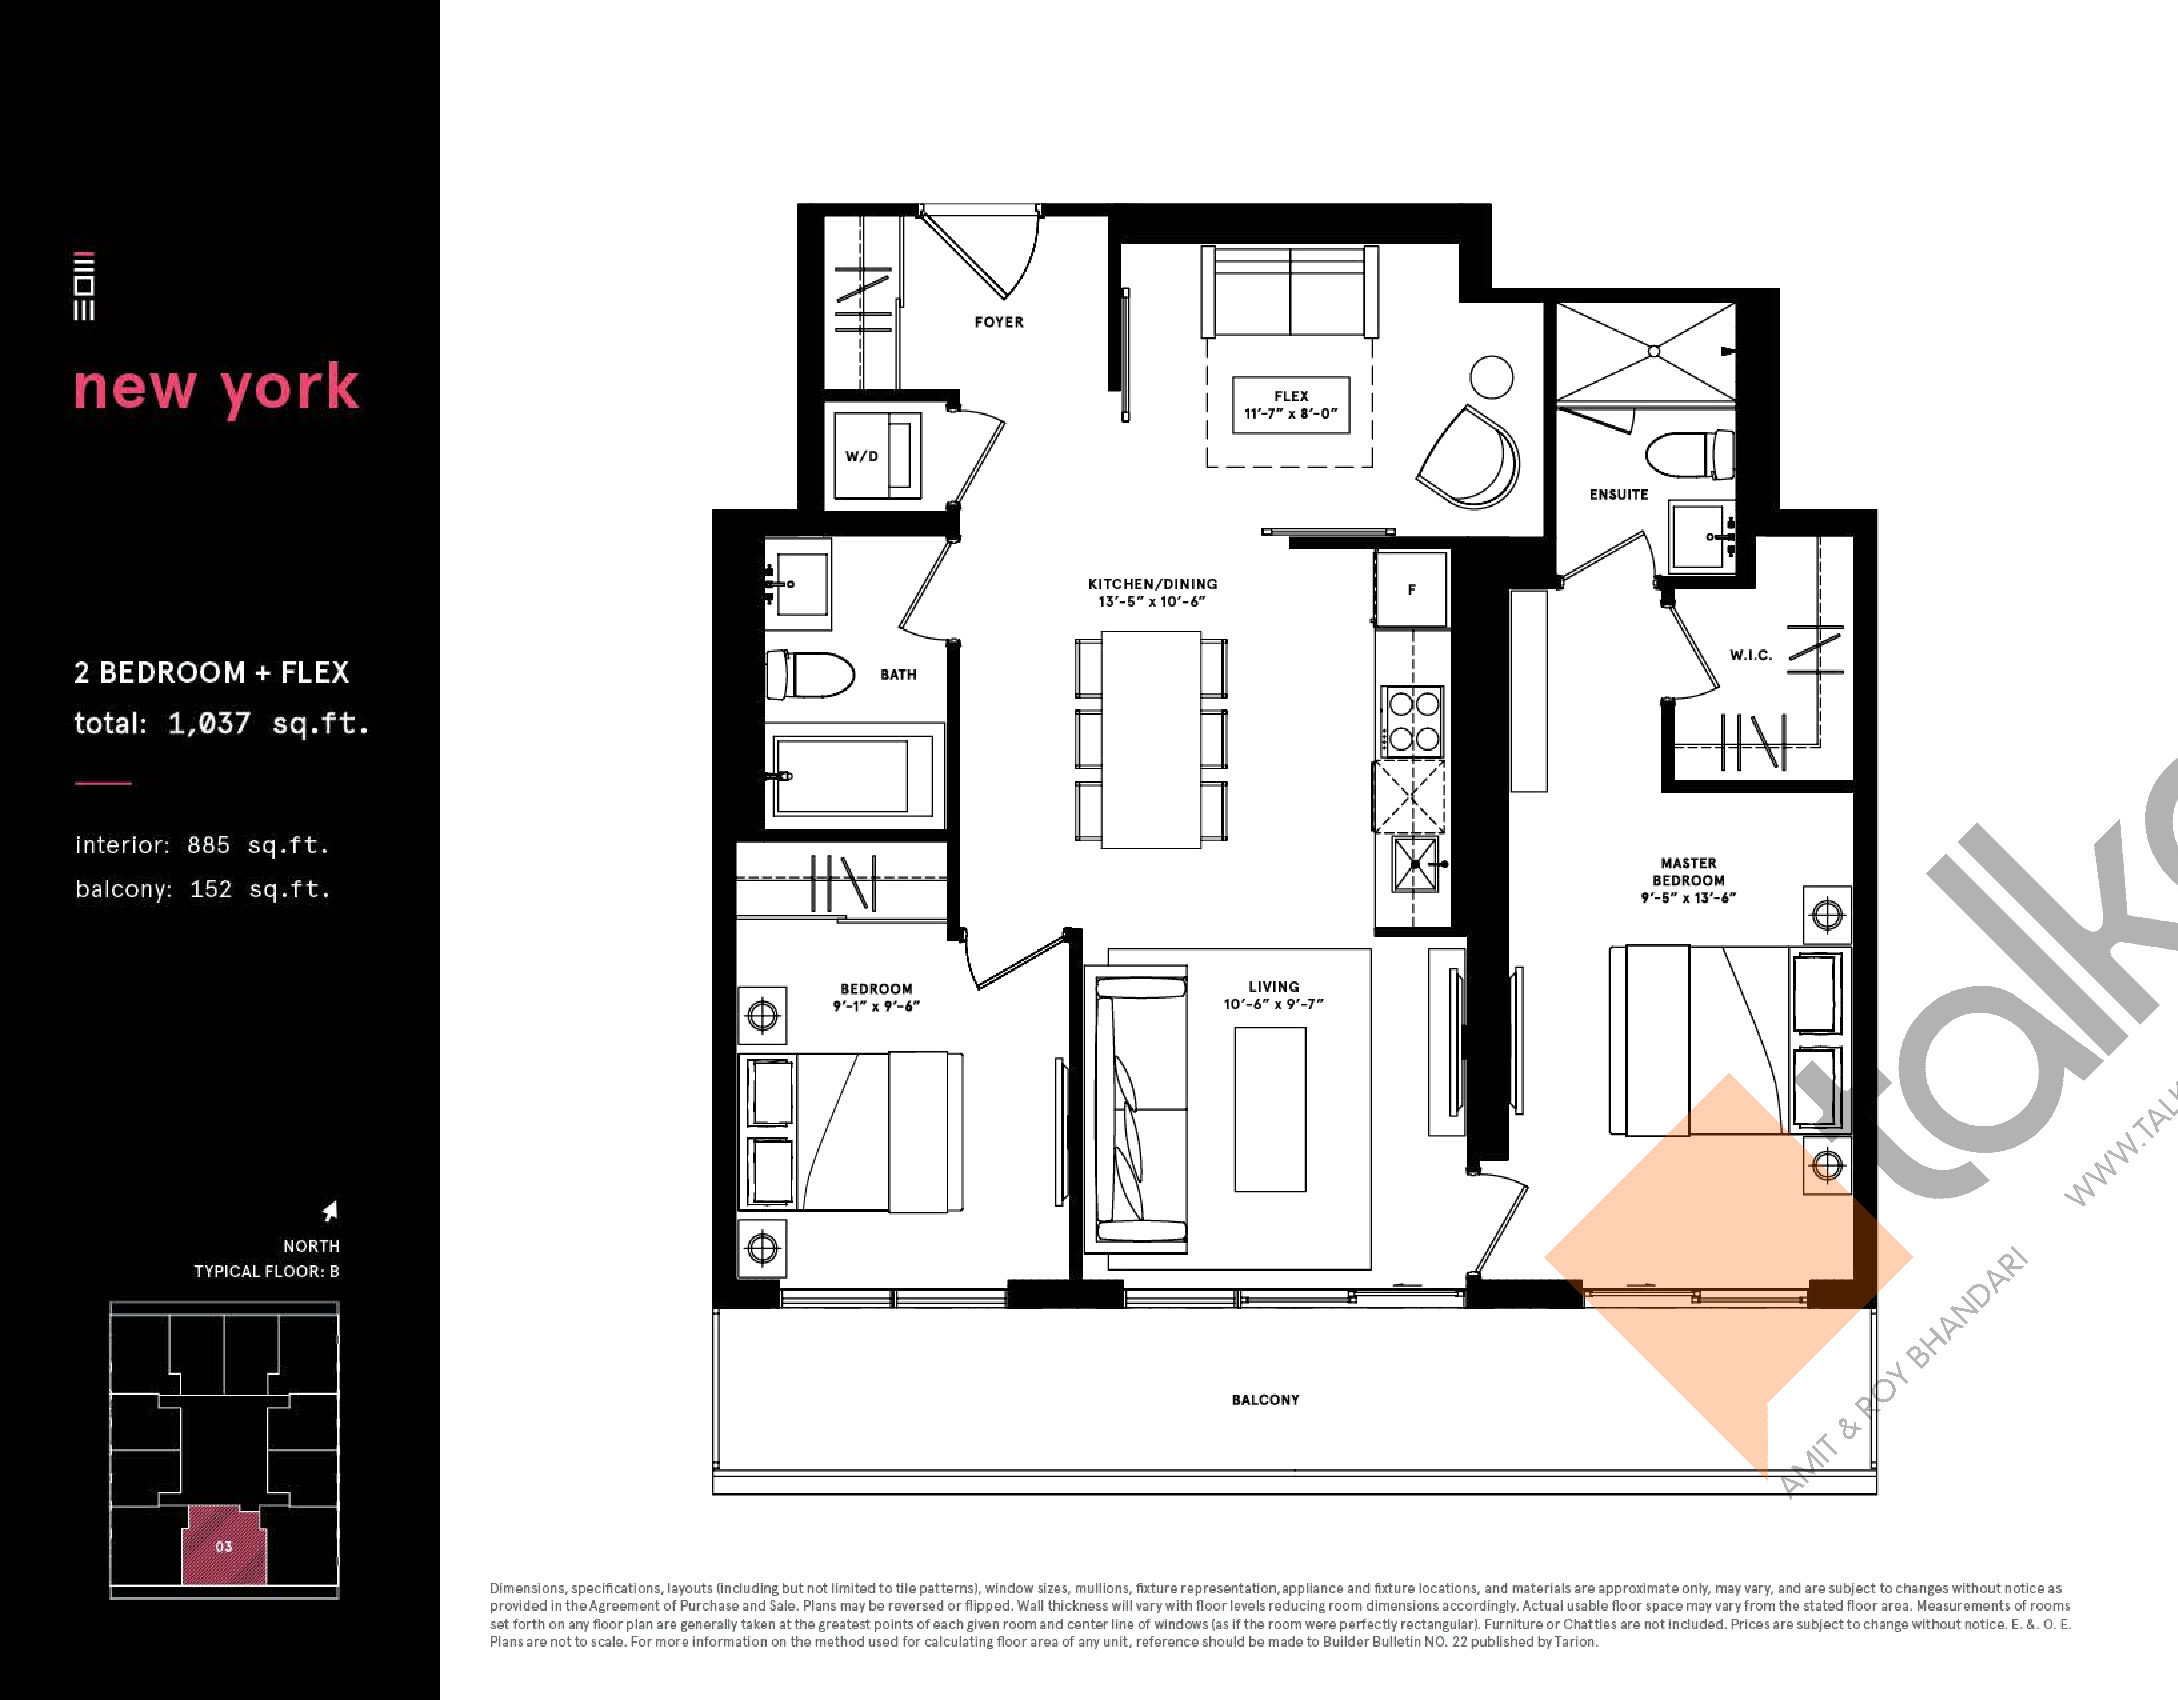 New York Floor Plan at Exchange District Condos - 885 sq.ft